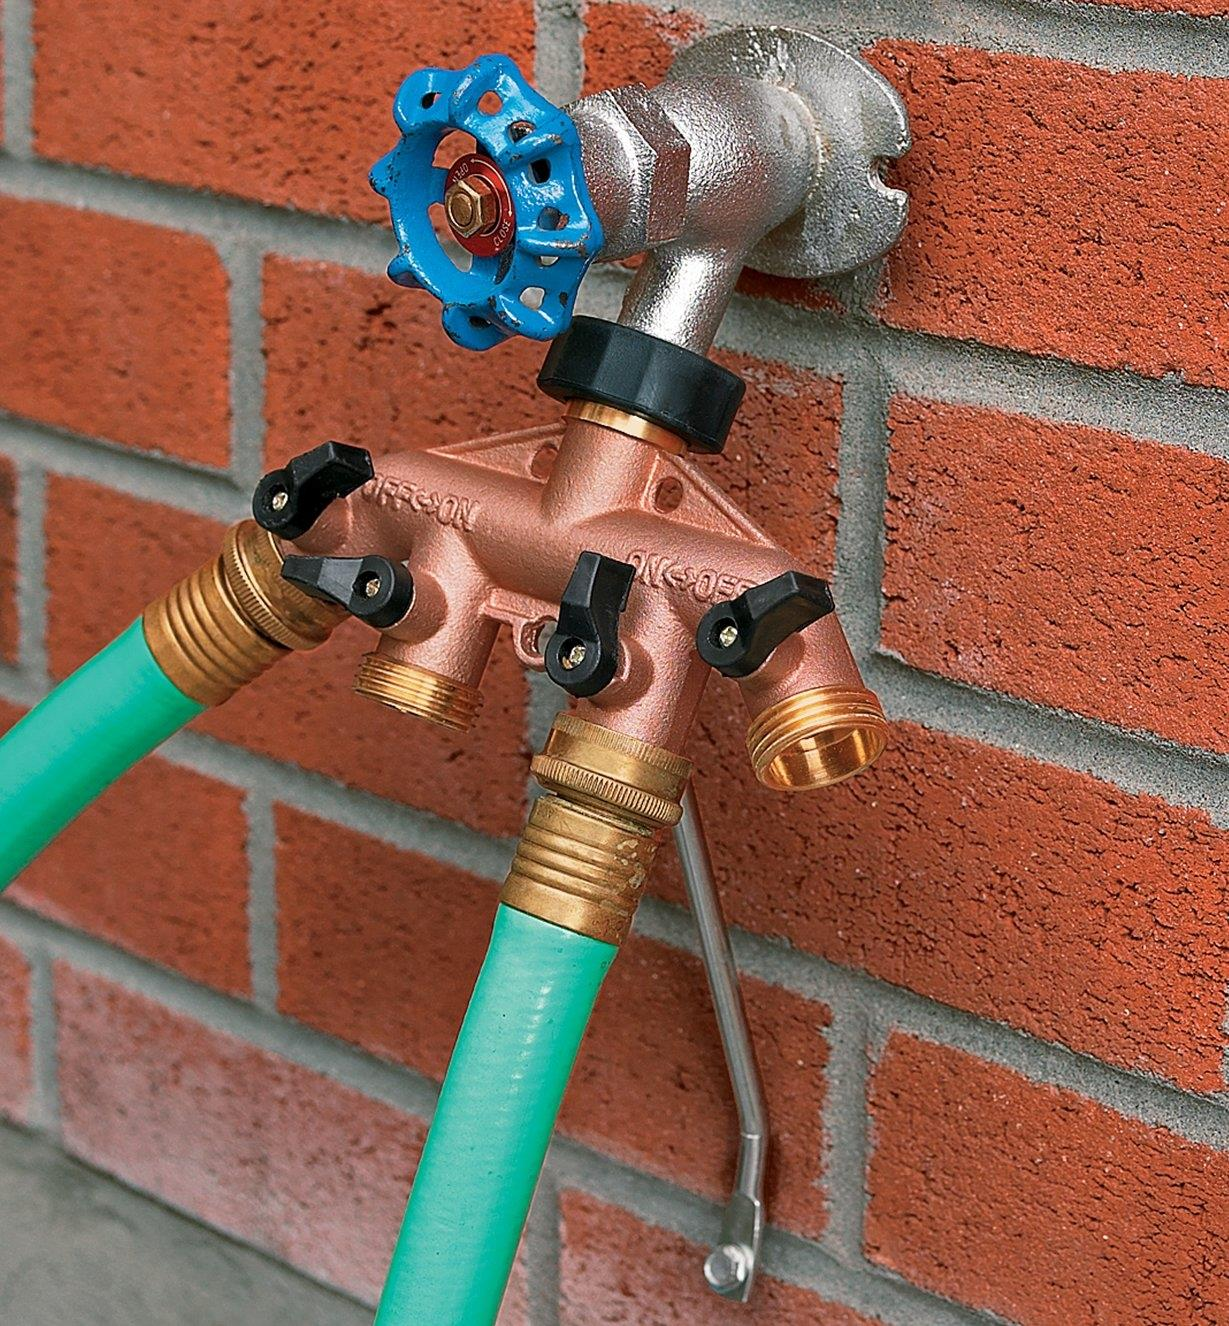 Four-Way Brass Manifold connected to faucet and two hoses